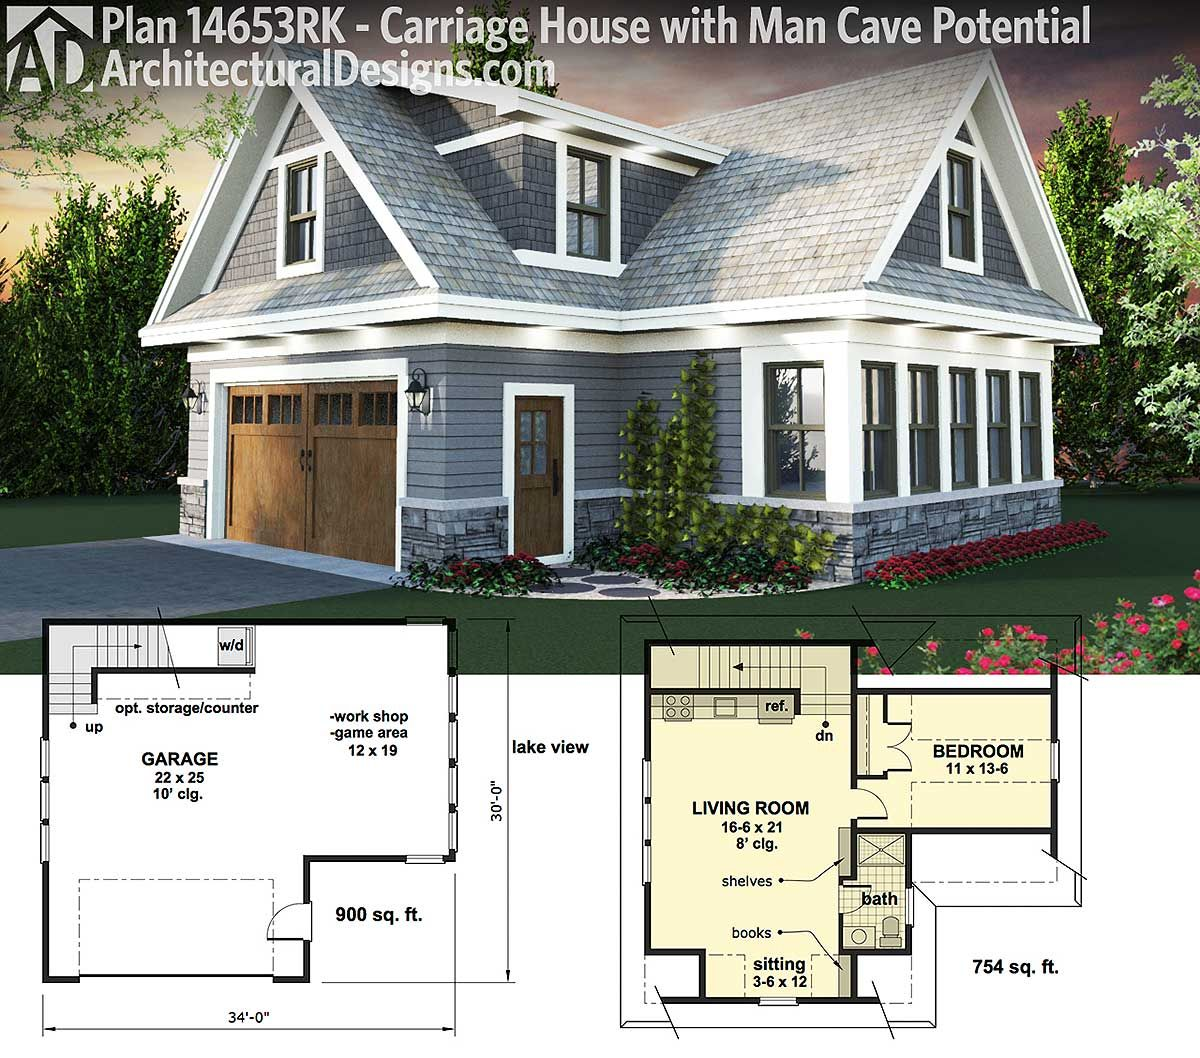 Home Design Ideas Build: Plan 14653RK: Carriage House Plan With Man Cave Potential